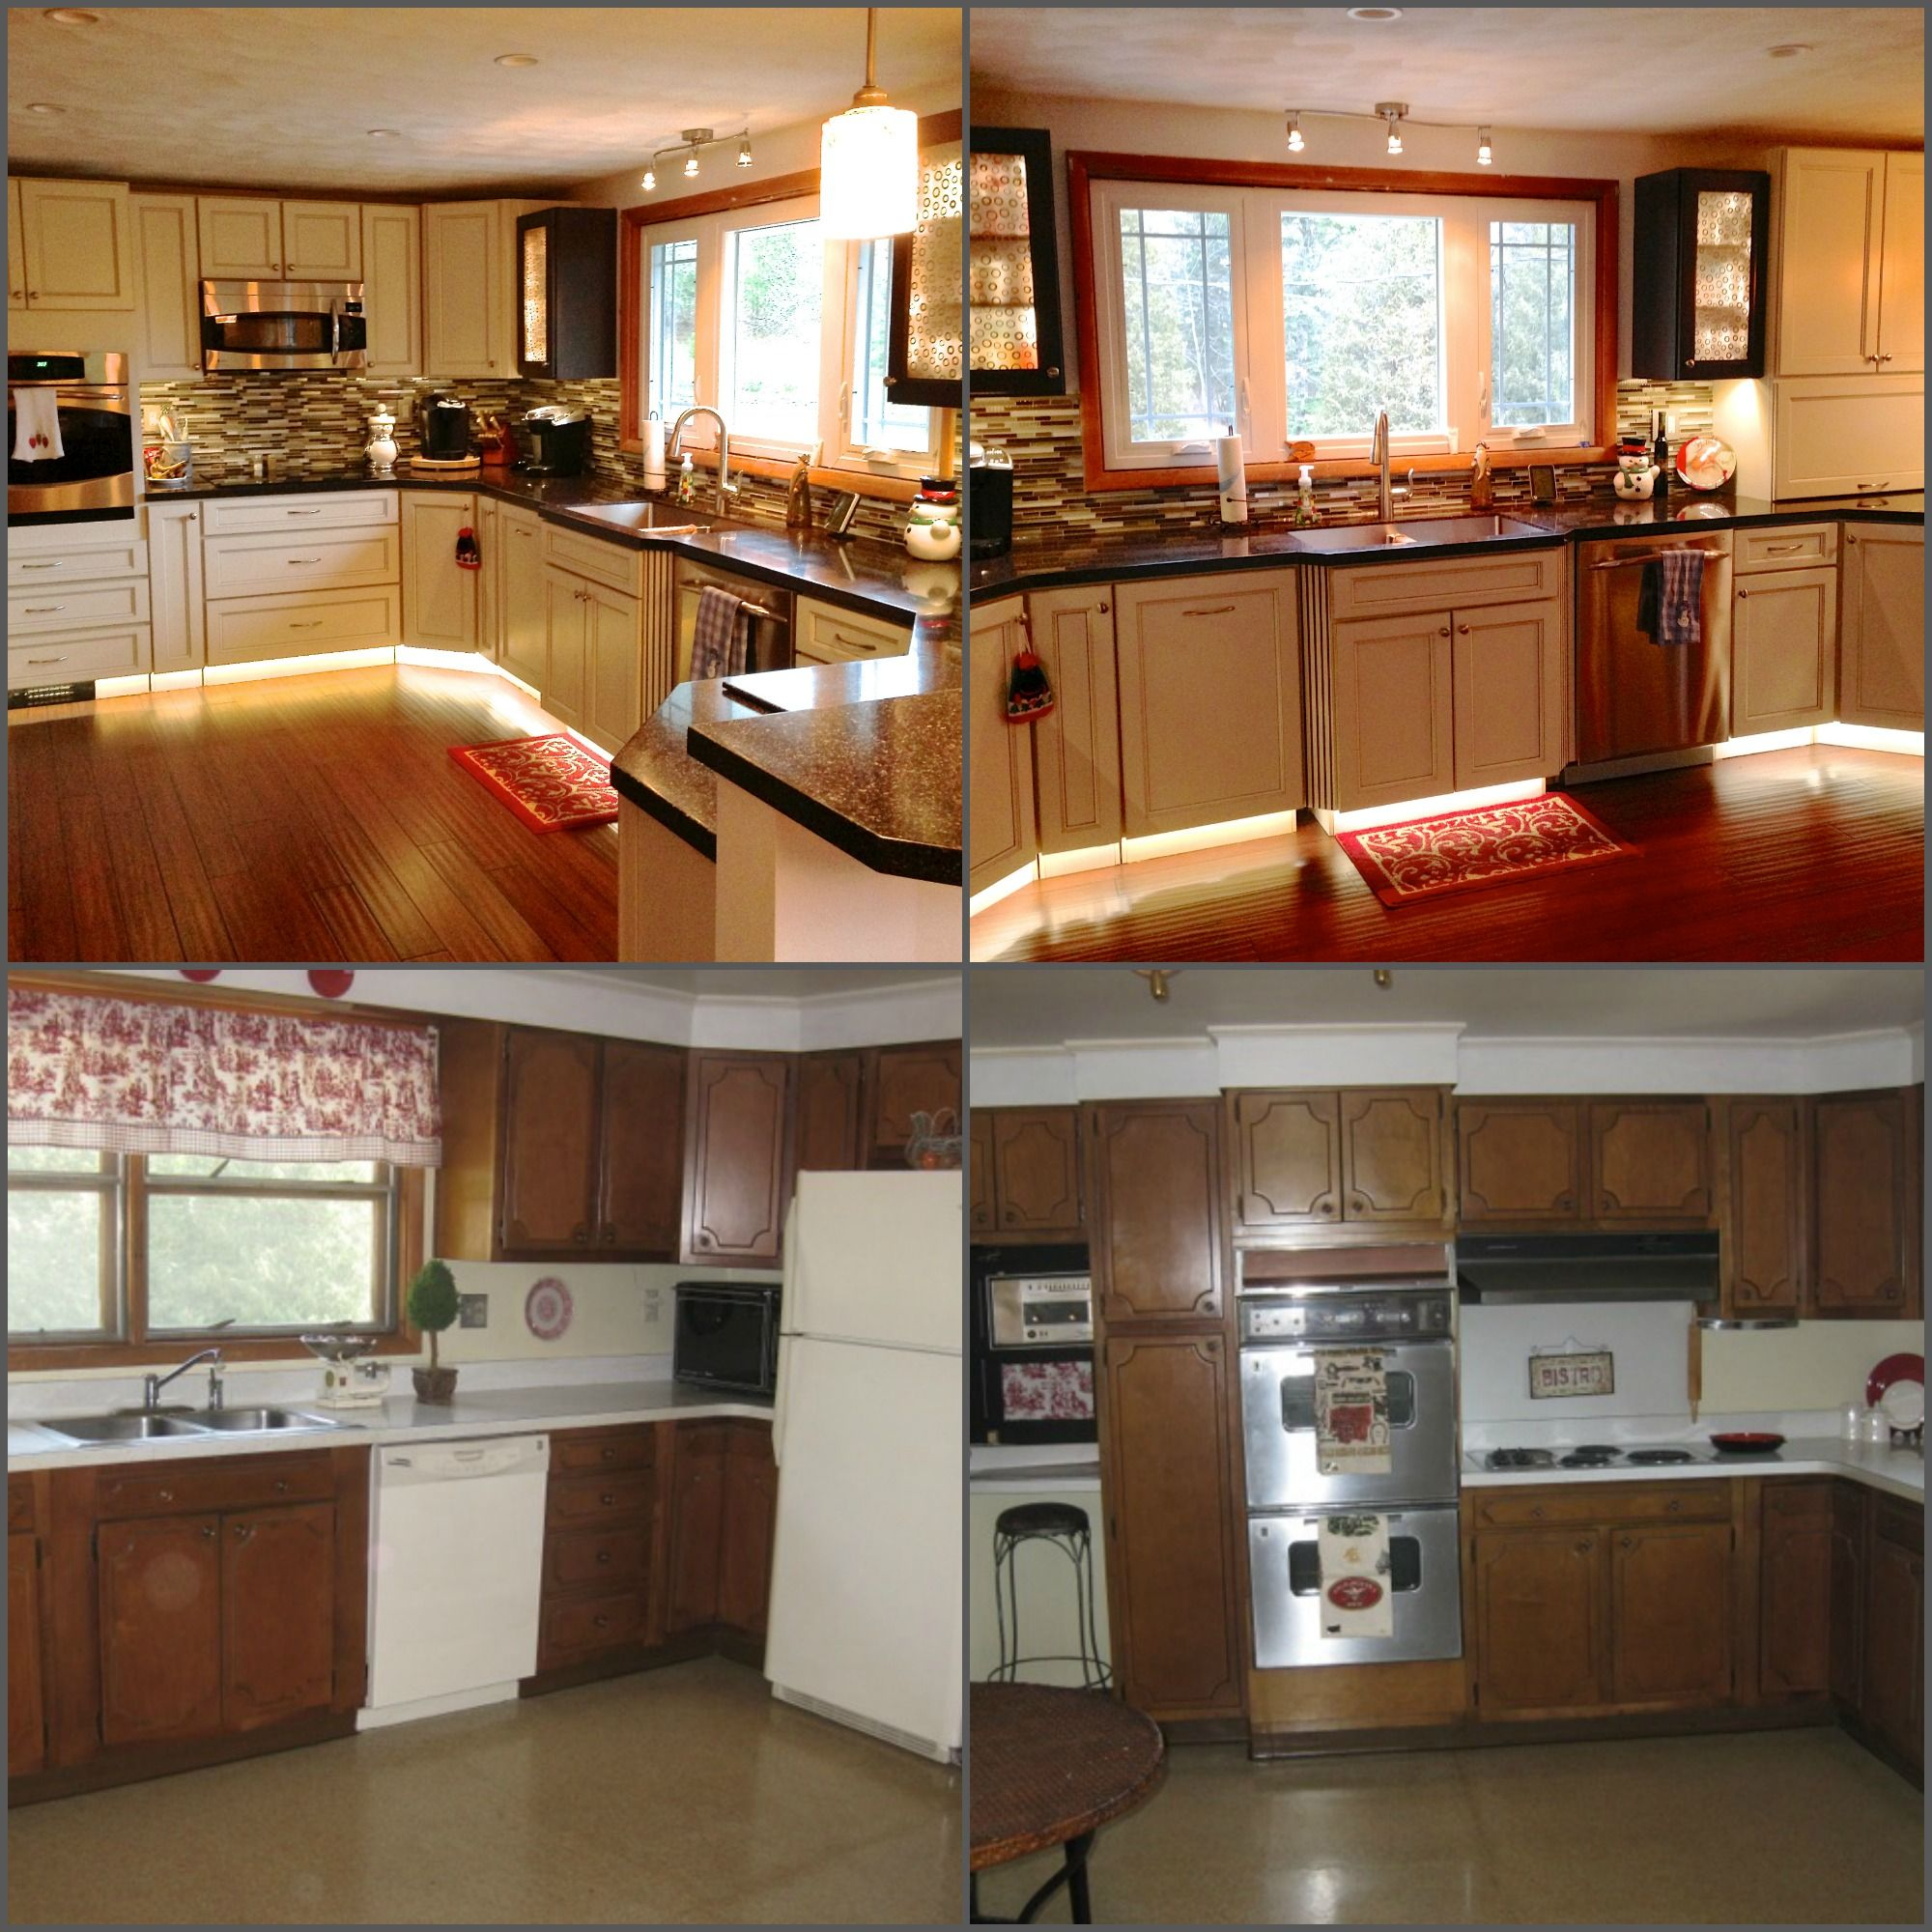 Kitchen Renovation Plans: Mobile Home Kitchen Remodel As Well Mobile Home Kitchen